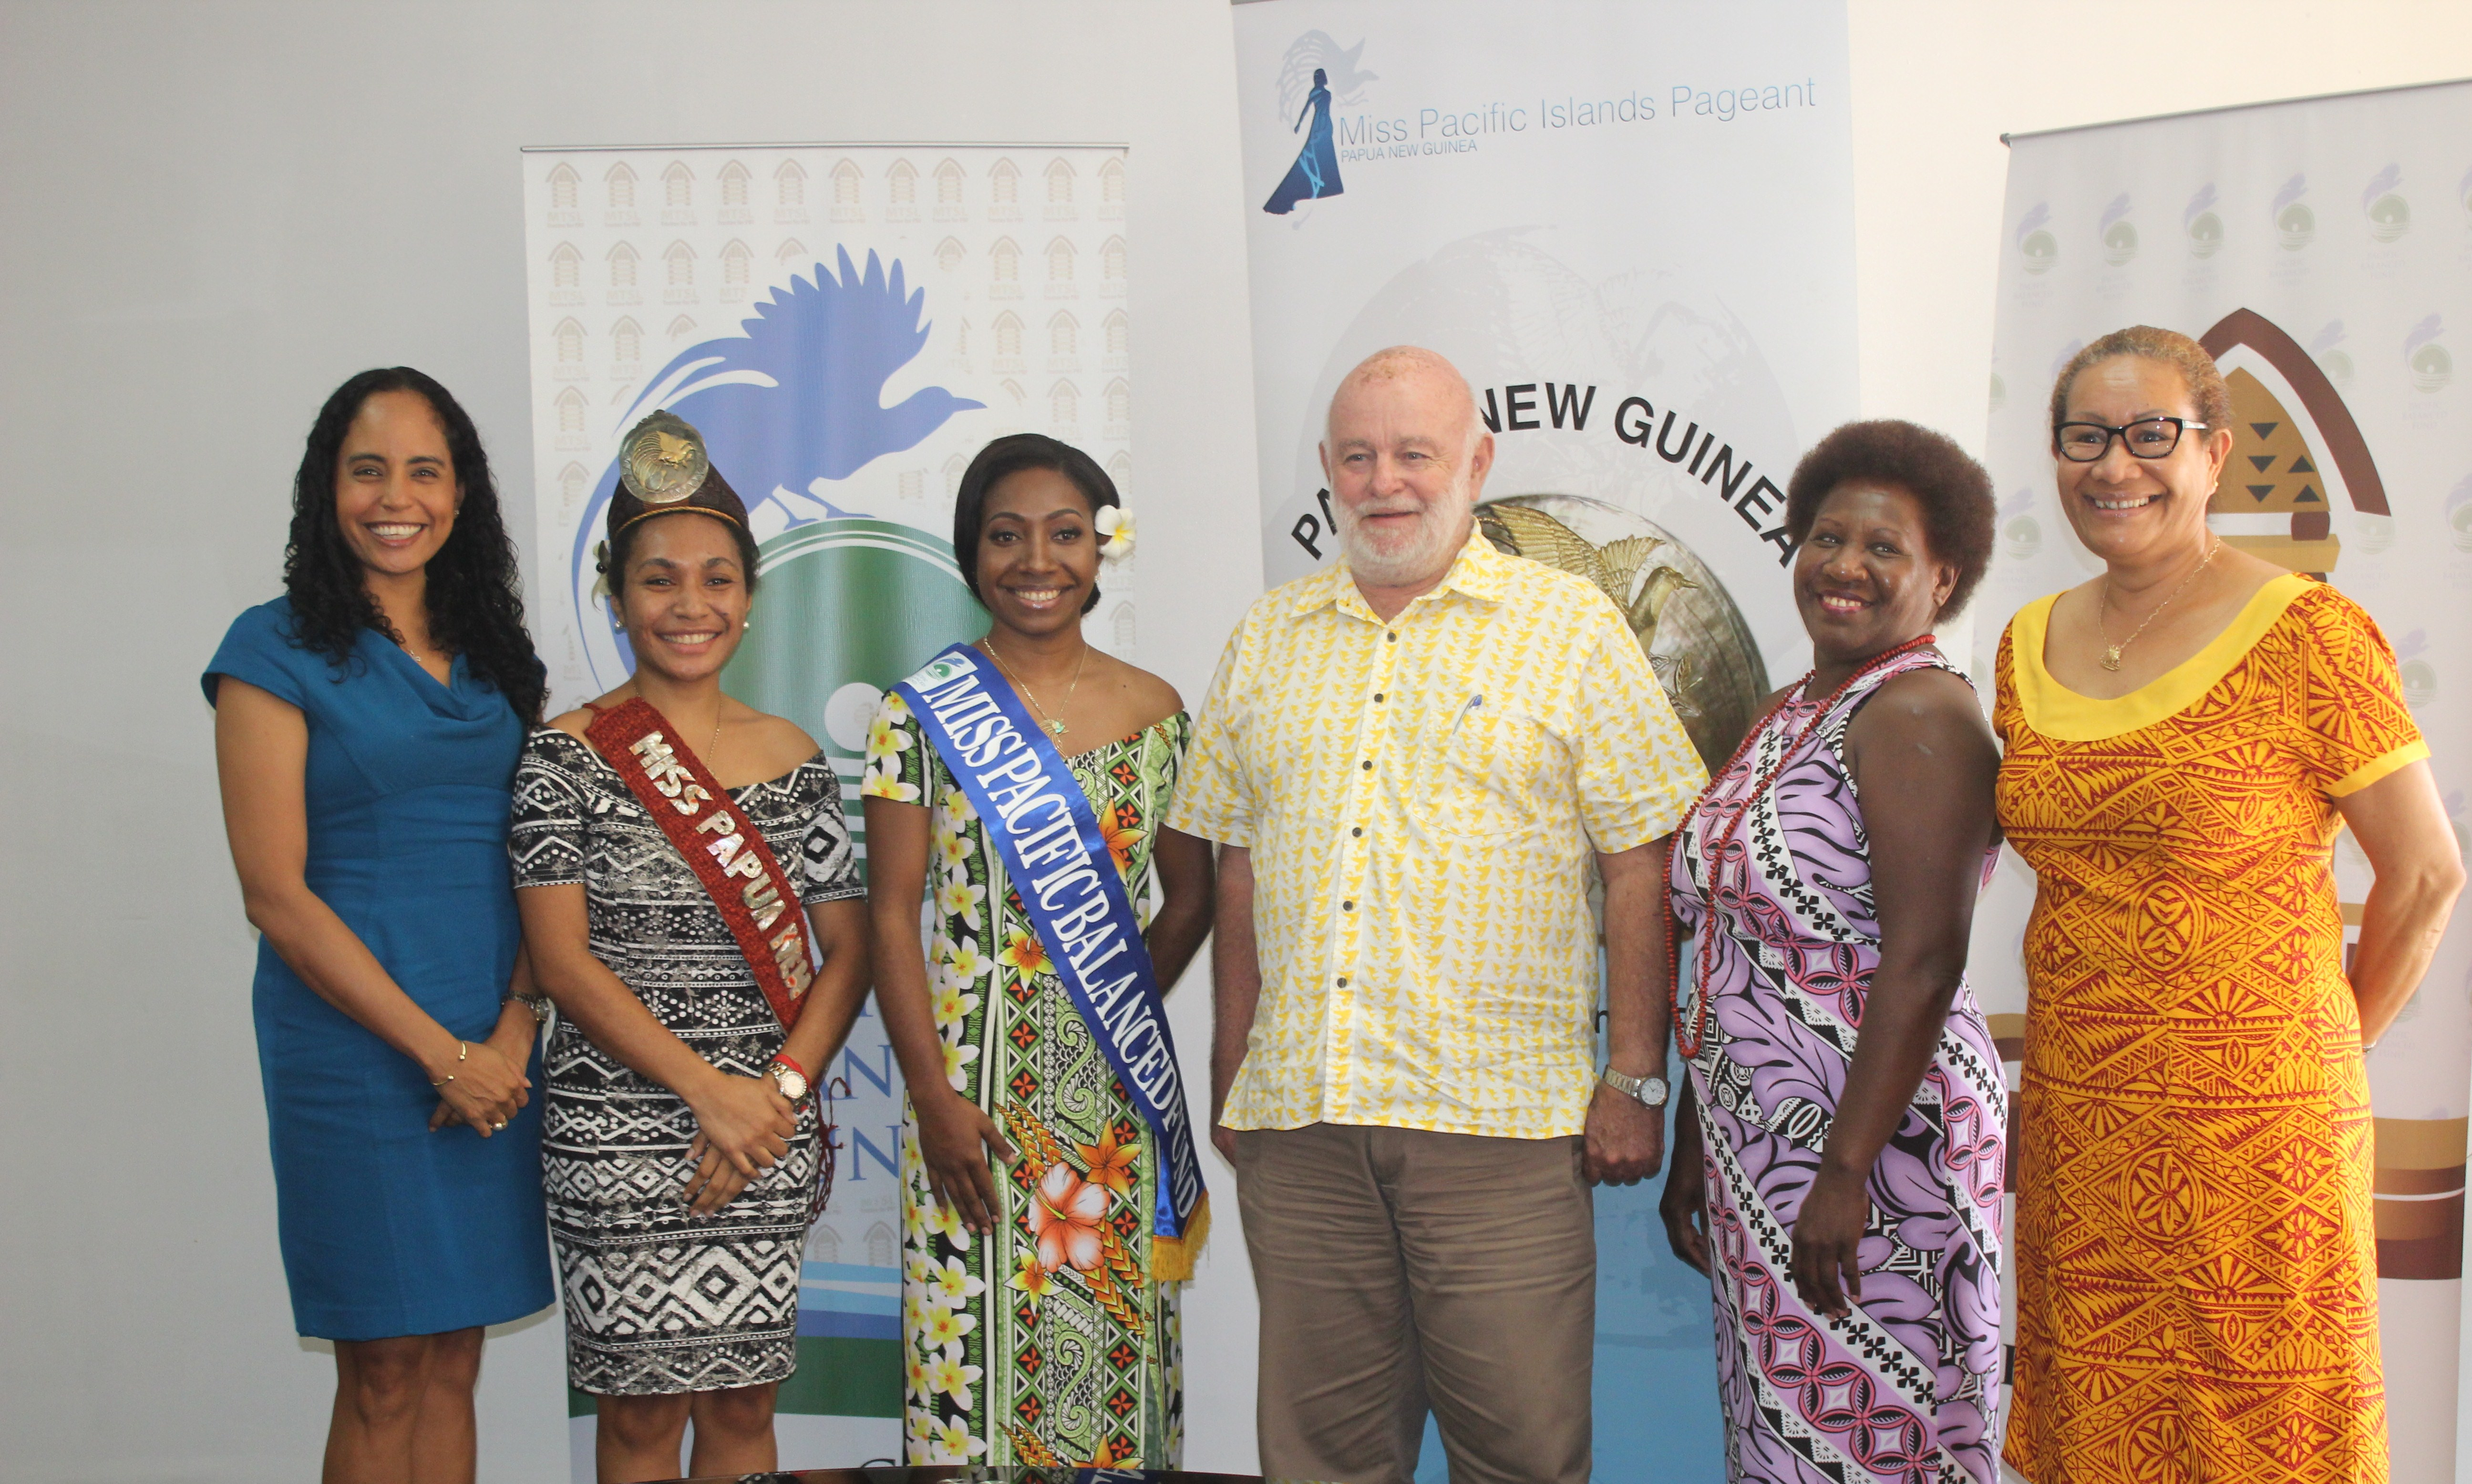 PNG's HOME GROWN INVESTMENT FUND LAUNCHES ENTRANT INTO THE MISS PACIFIC ISLANDS PAGEANT 2017